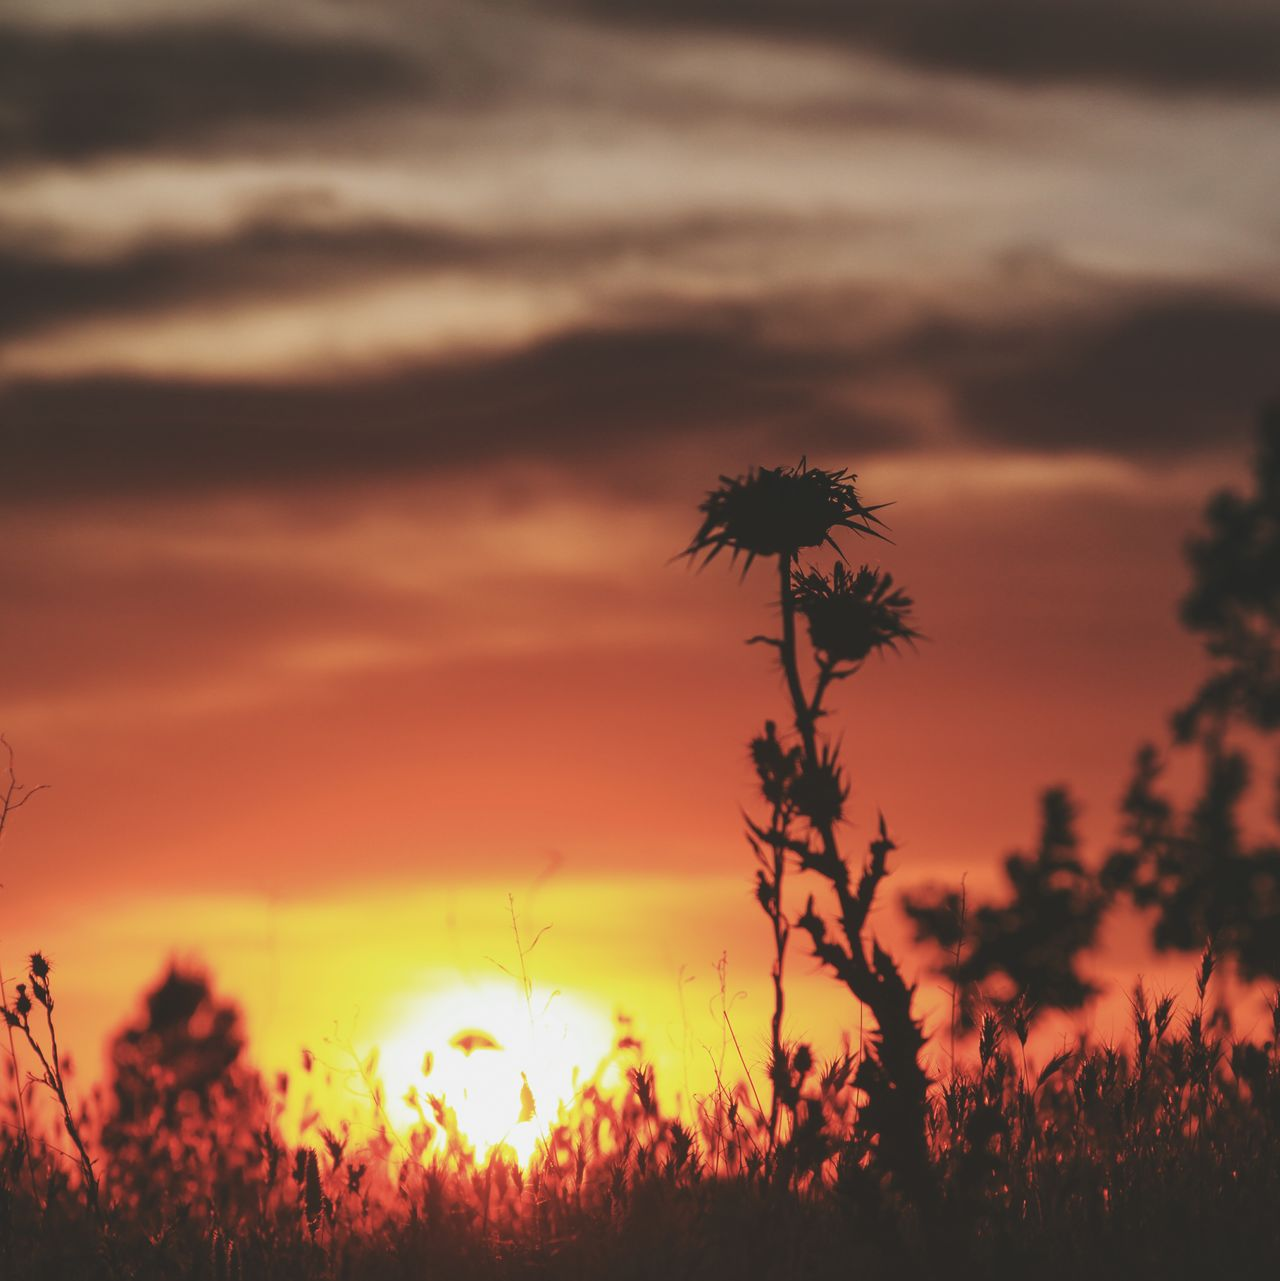 Sunset Nature Dramatic Sky Scenics Cloud - Sky Beauty In Nature Landscape Tranquil Scene Silhouette Outdoors Plant Sky No People Rural Scene Tranquility Eyeemphotography Check This Out EyeEm Gallery The Outdoors 2017 EyeEm Awards Close-up Cardo Dried Plant Madrid Spain Madrid The Great Outdoors - 2017 EyeEm Awards